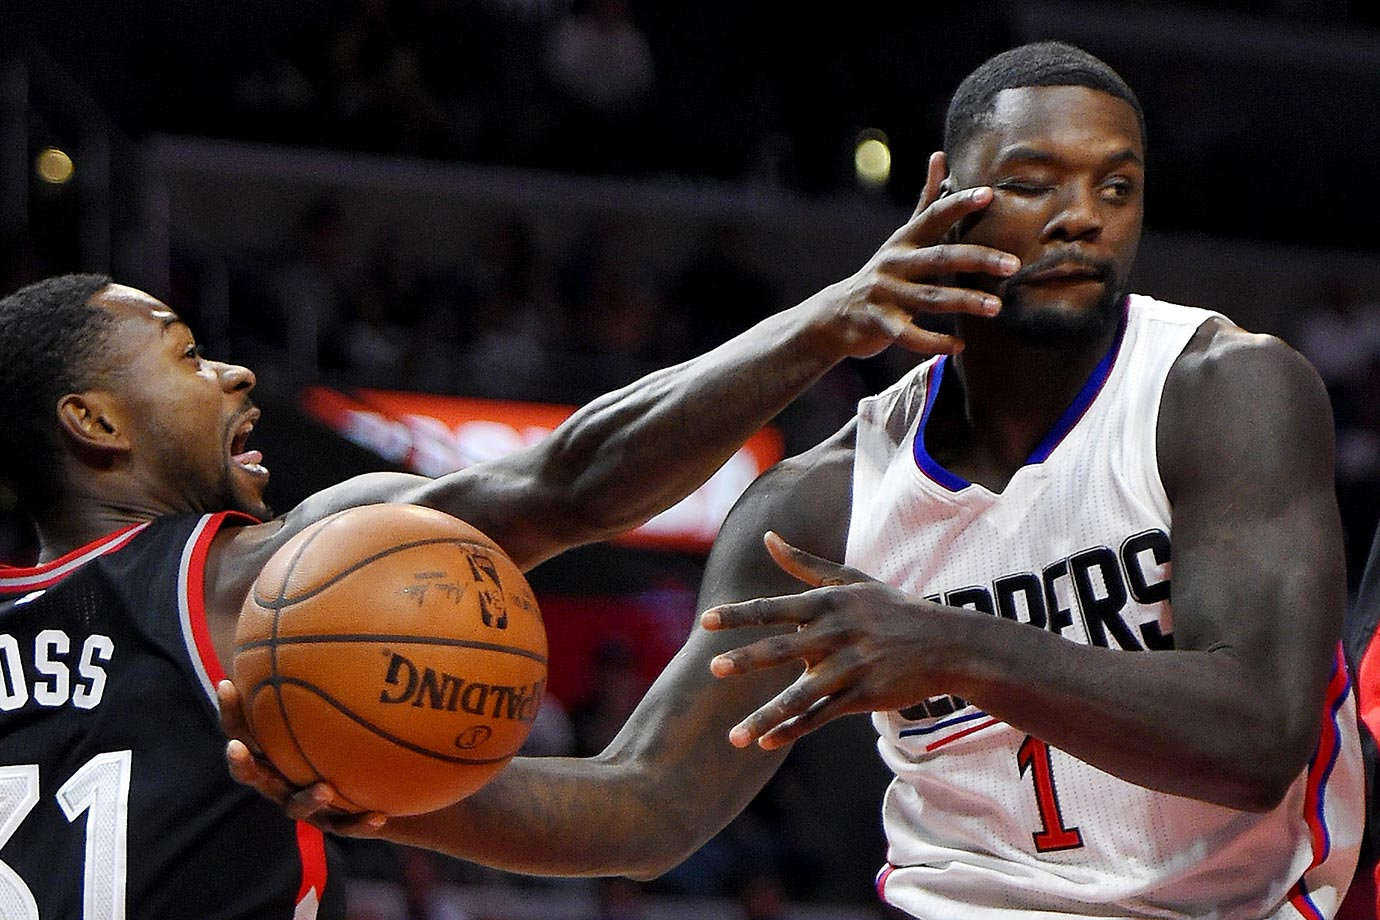 Raptors forward Terrence Ross fails to close both eyes of Clippers forward Lance Stephenson.